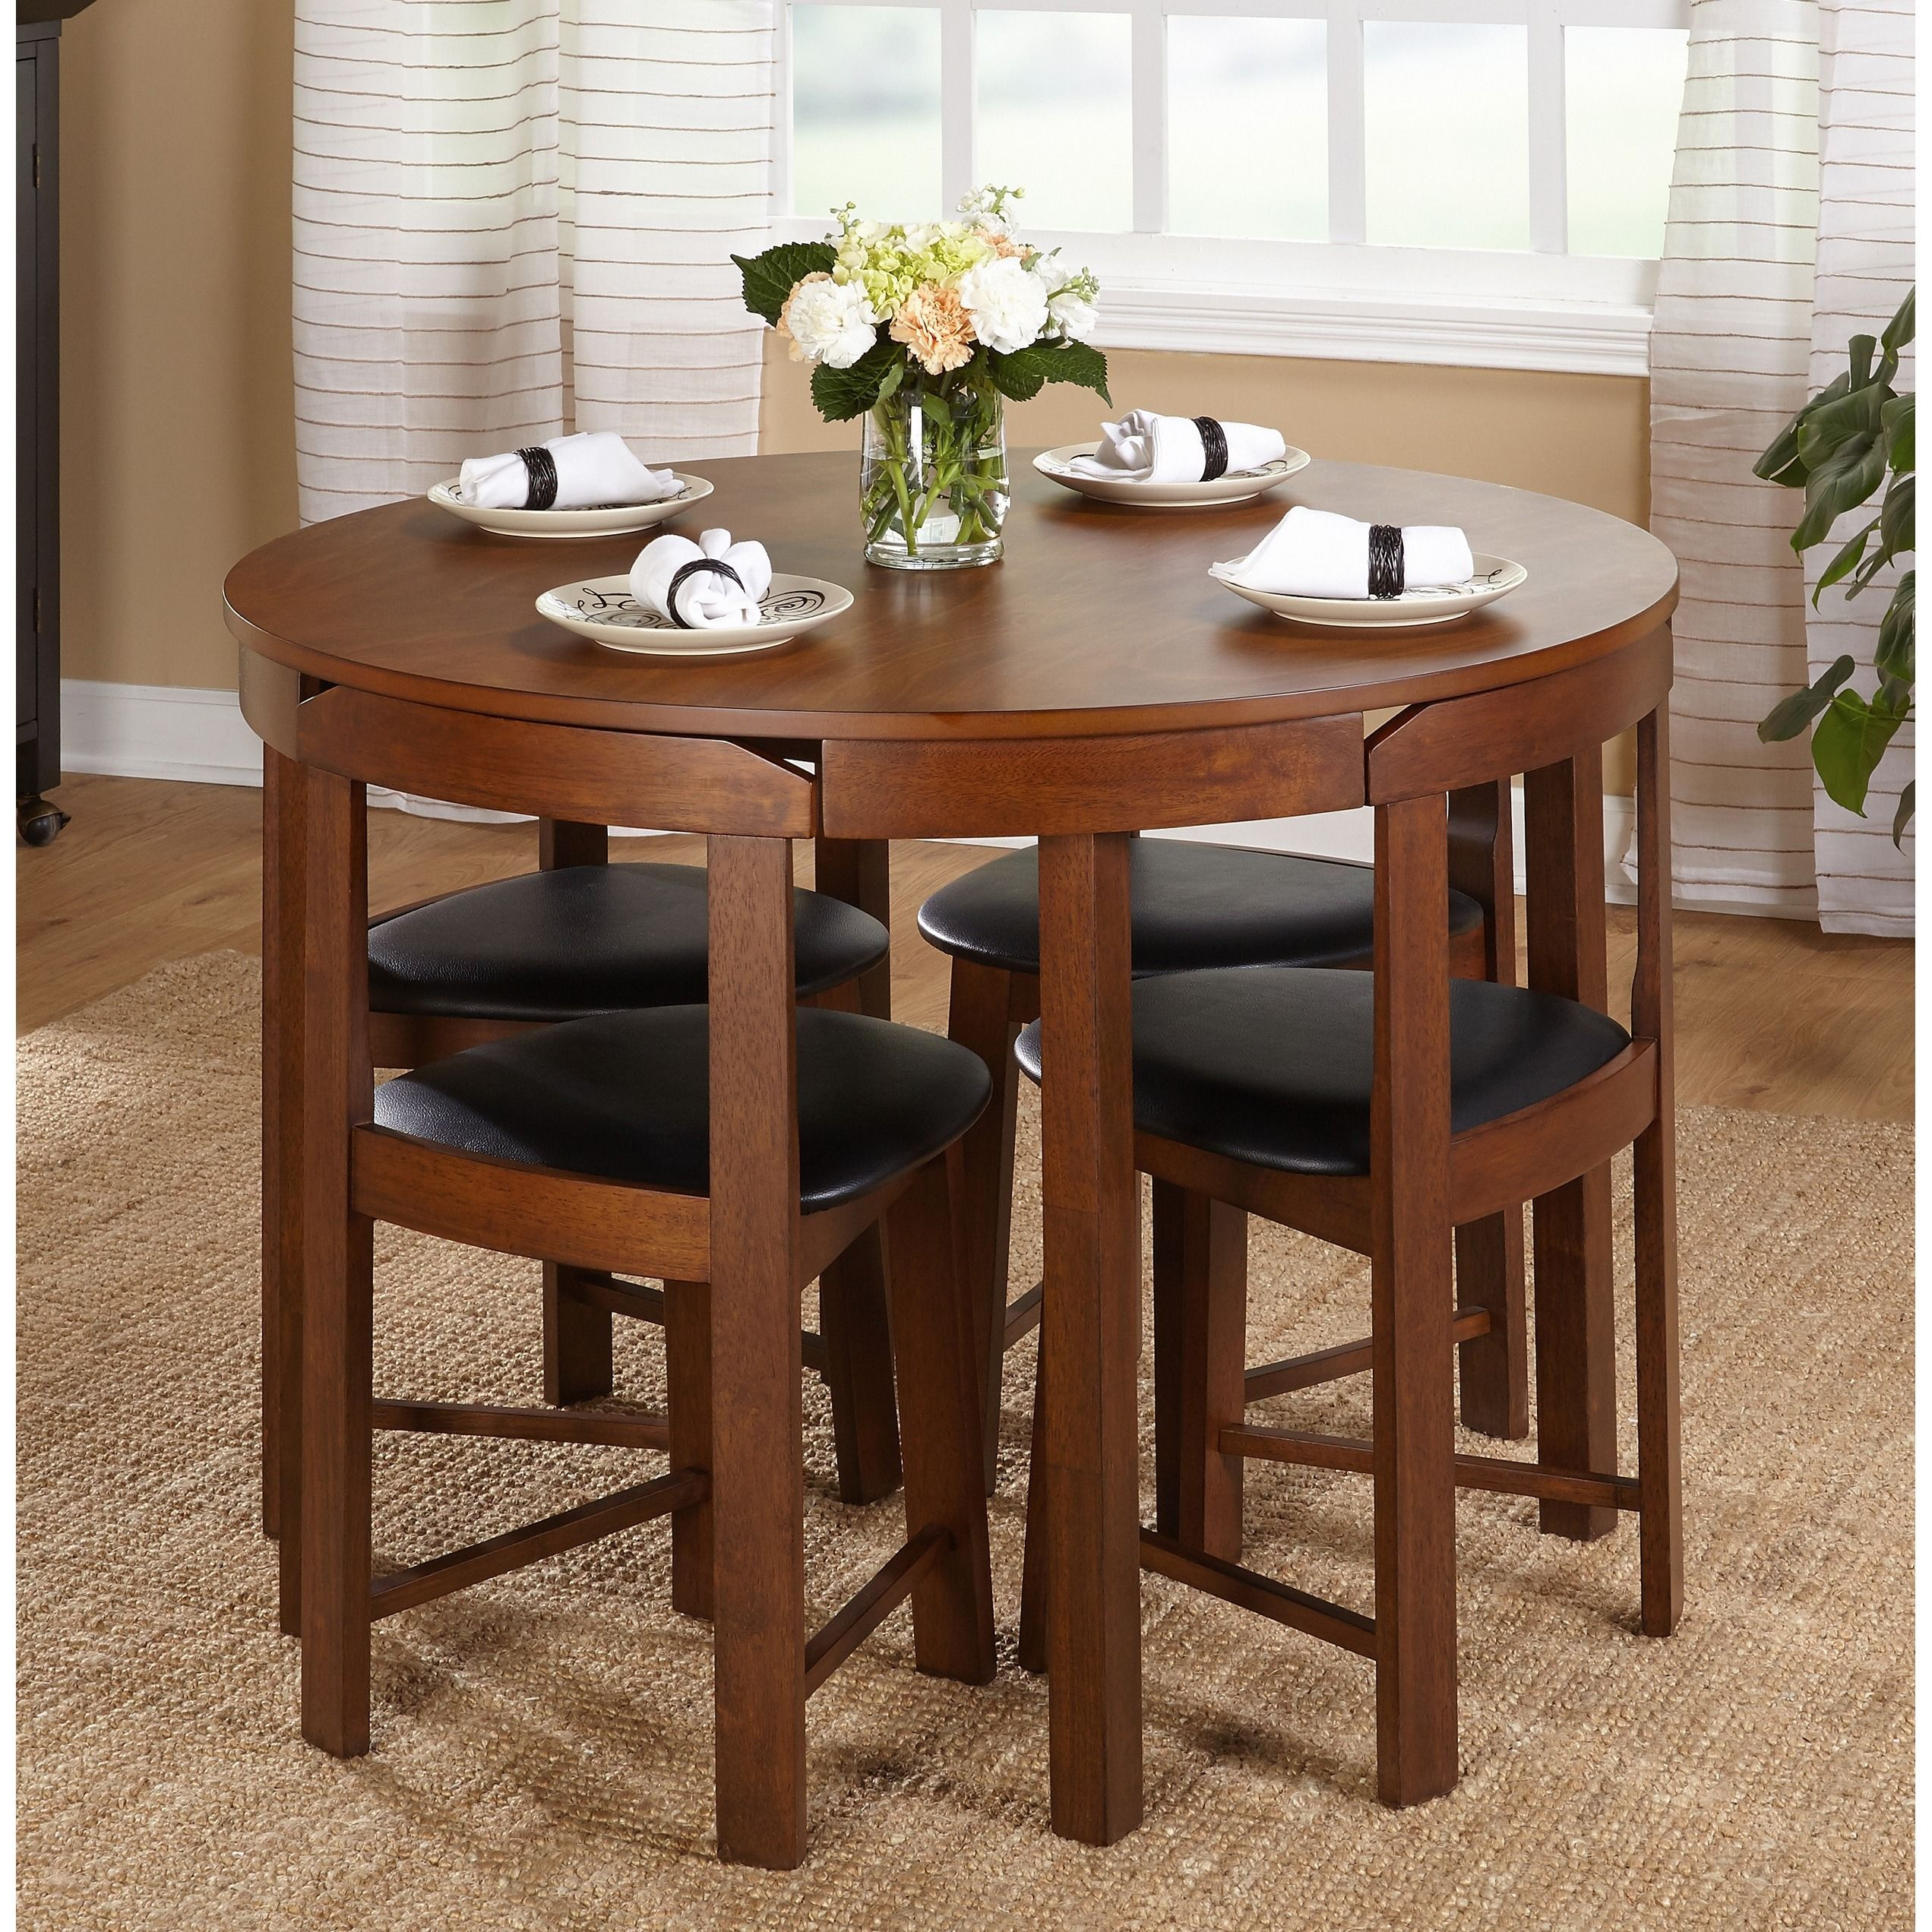 round dining table 5 chairs